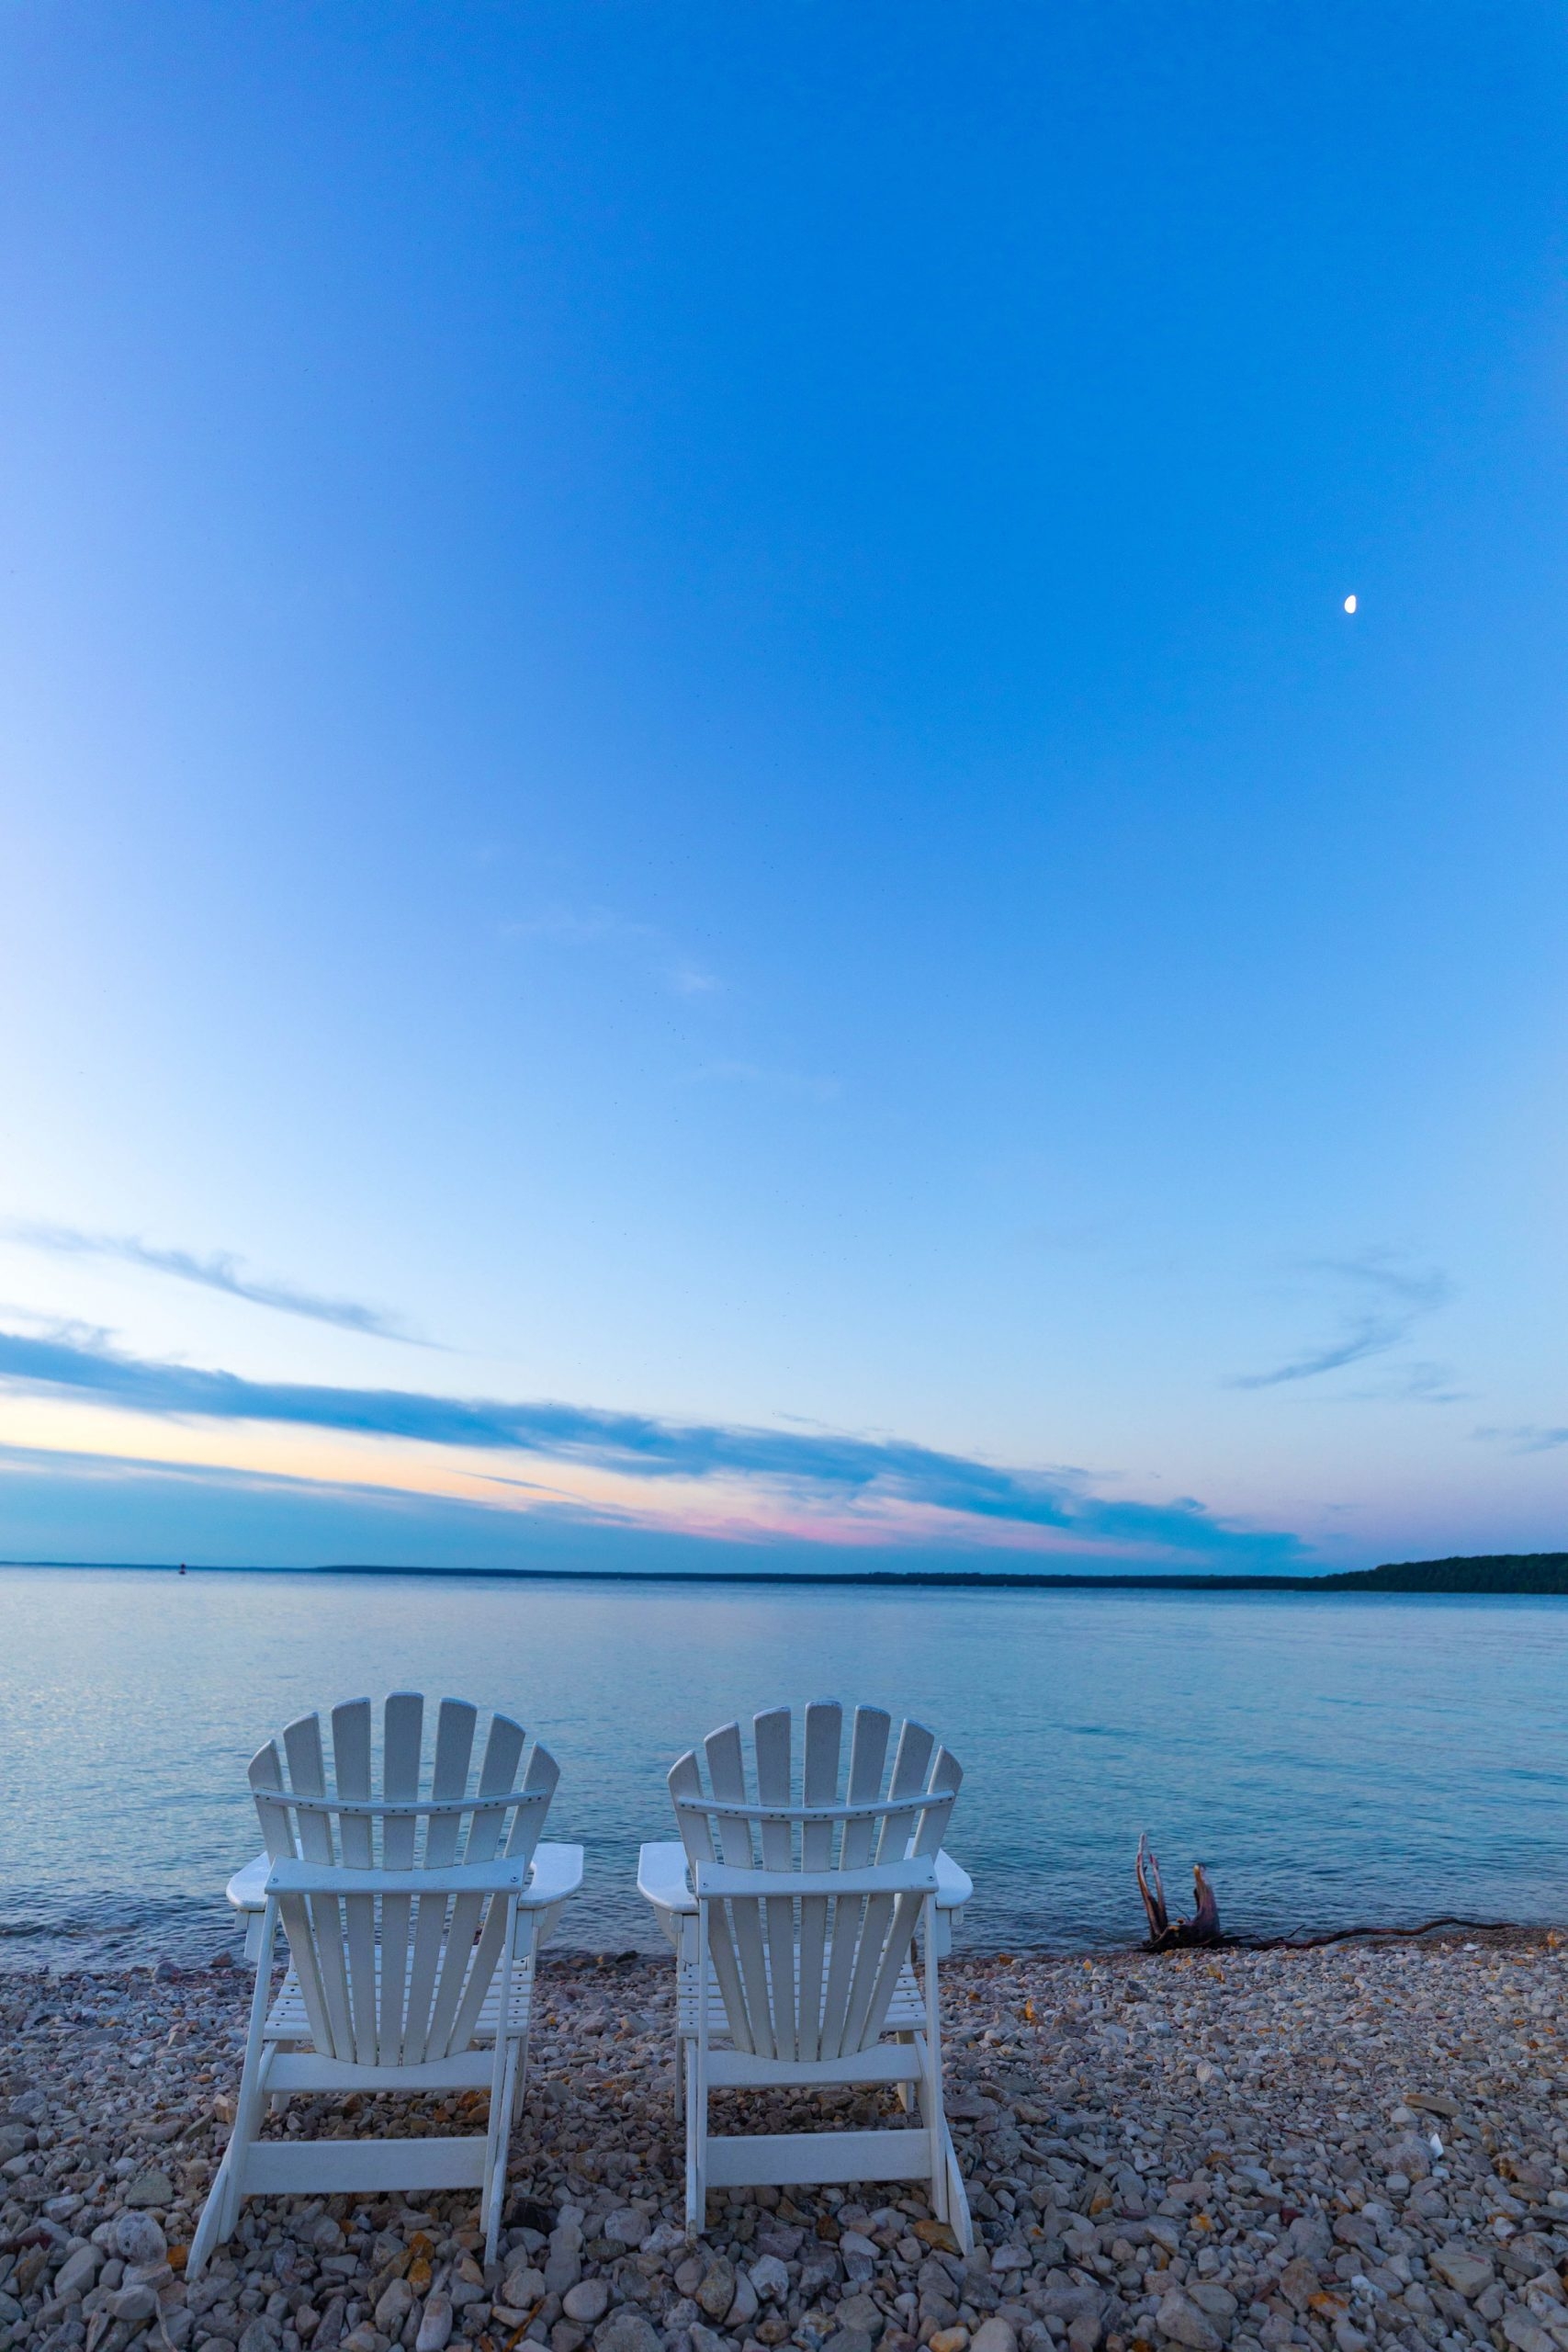 5:14 am Sunrise Over Lake Huron Adirondack Chairs on the Great Lawn Beach View at Mission Point Resort by @AnnieFairfax